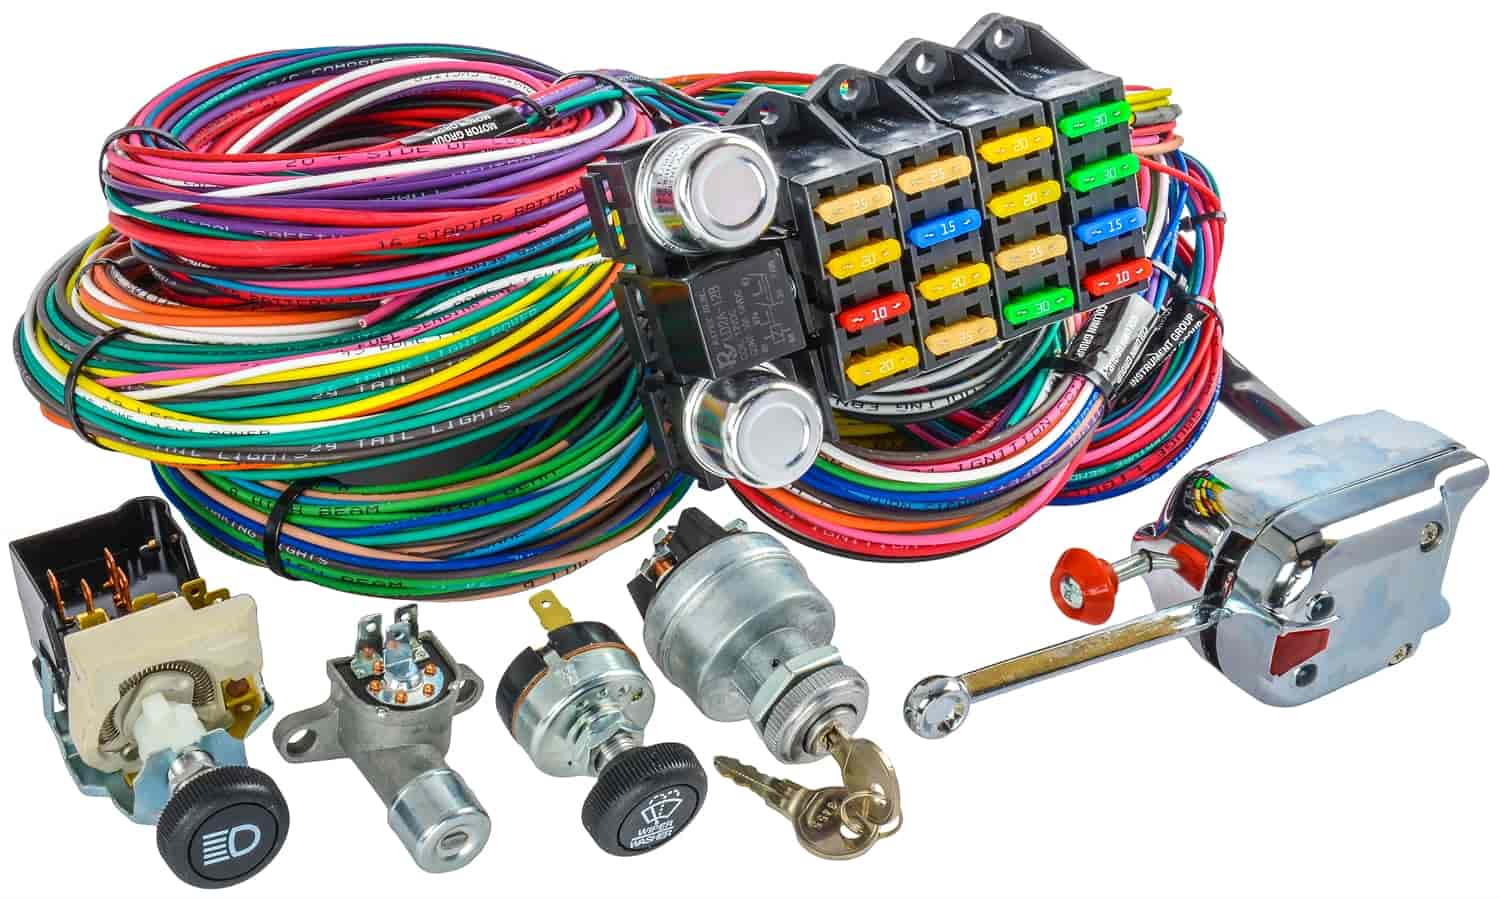 555 10405k jegs performance products 10405k universal wiring harness jegs universal wiring harness at readyjetset.co